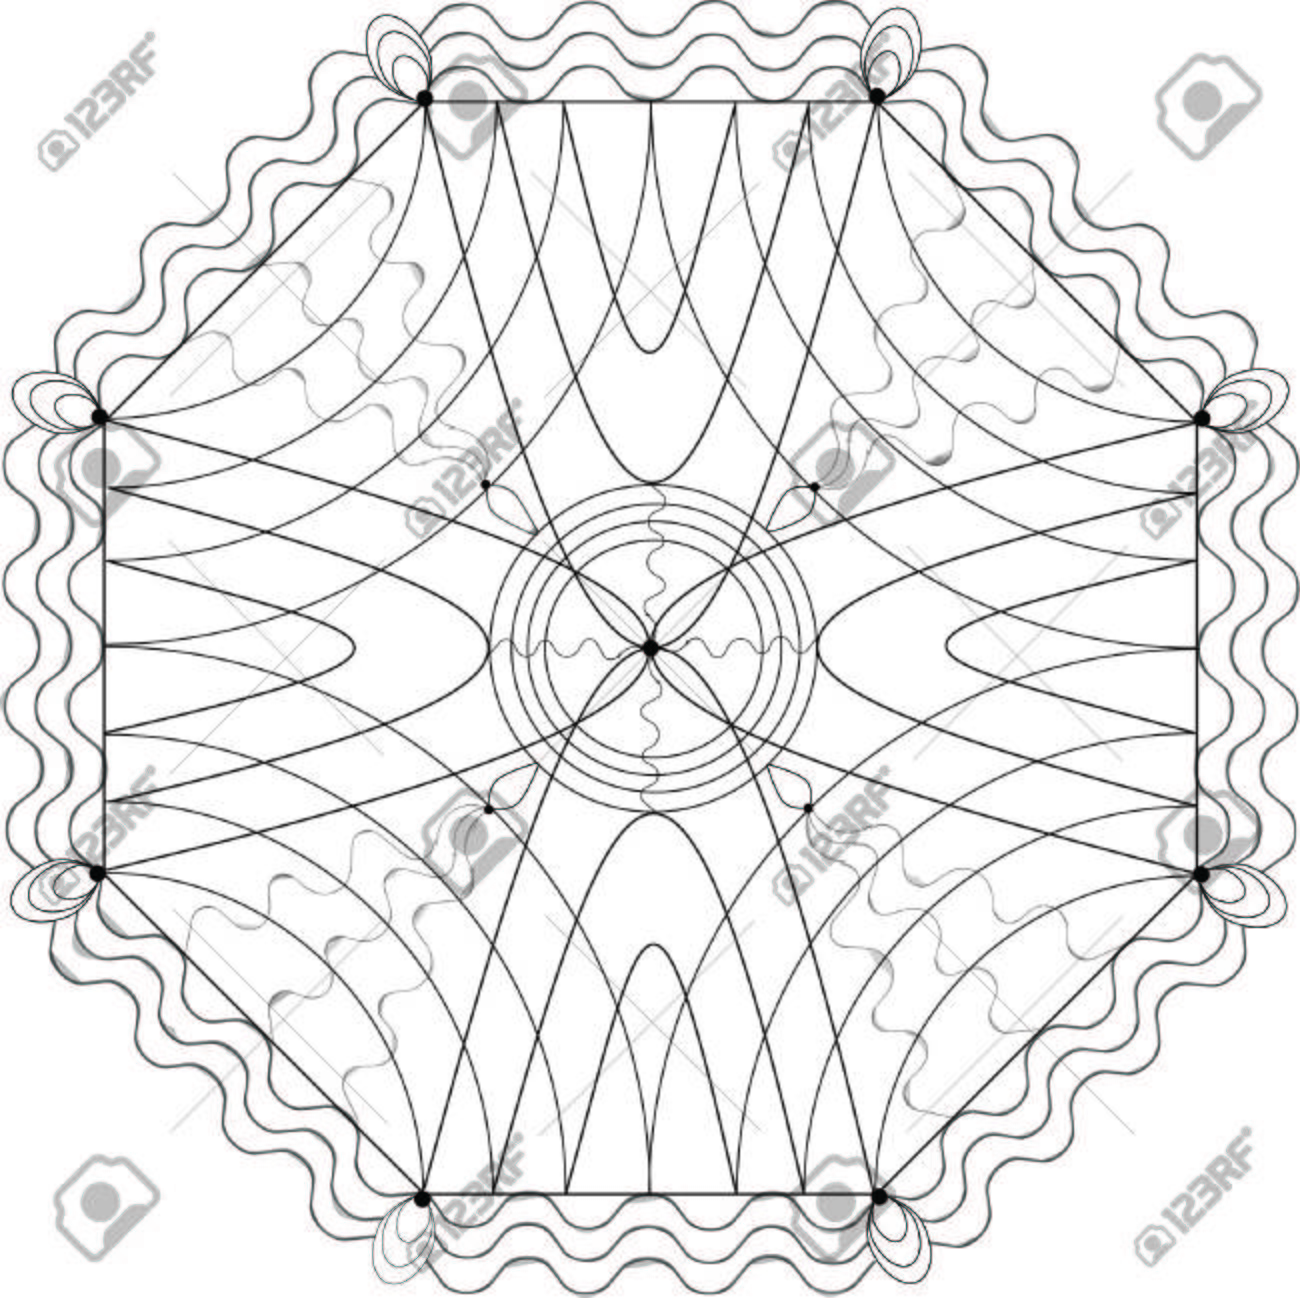 Illustration With Geometric Patterns For Coloring Book Royalty Free ...